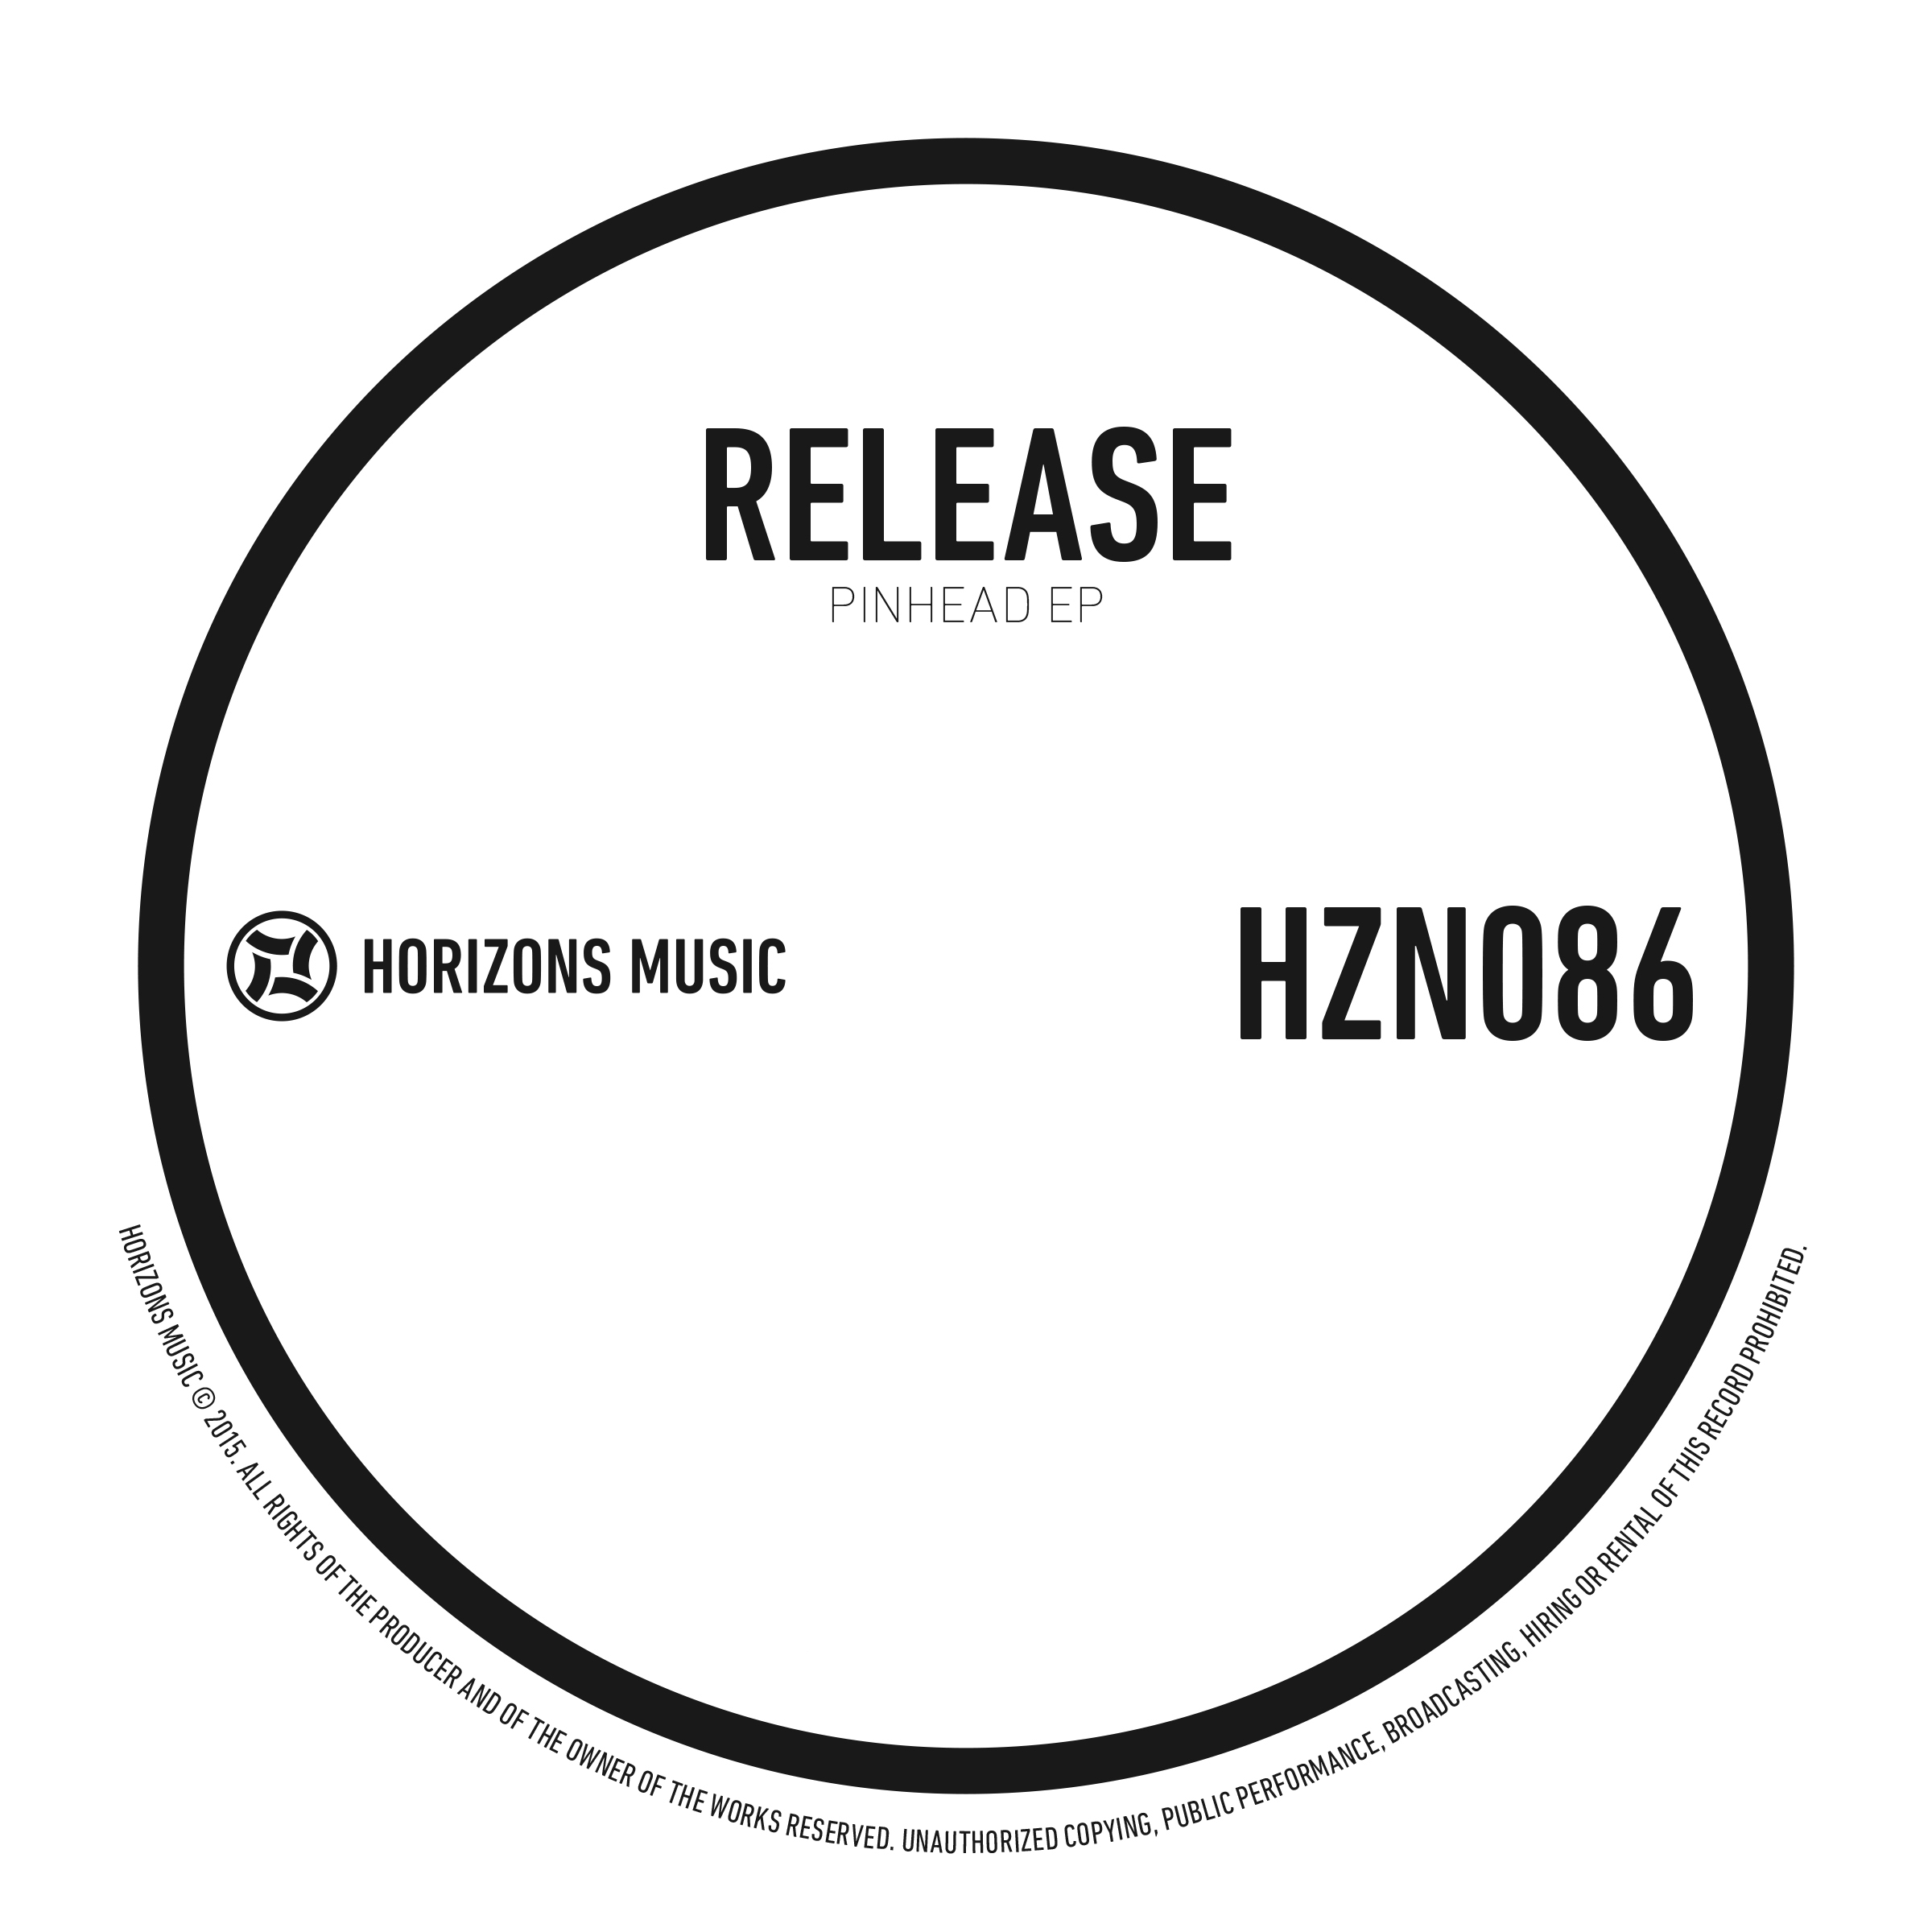 Release/PINHEAD EP 12""